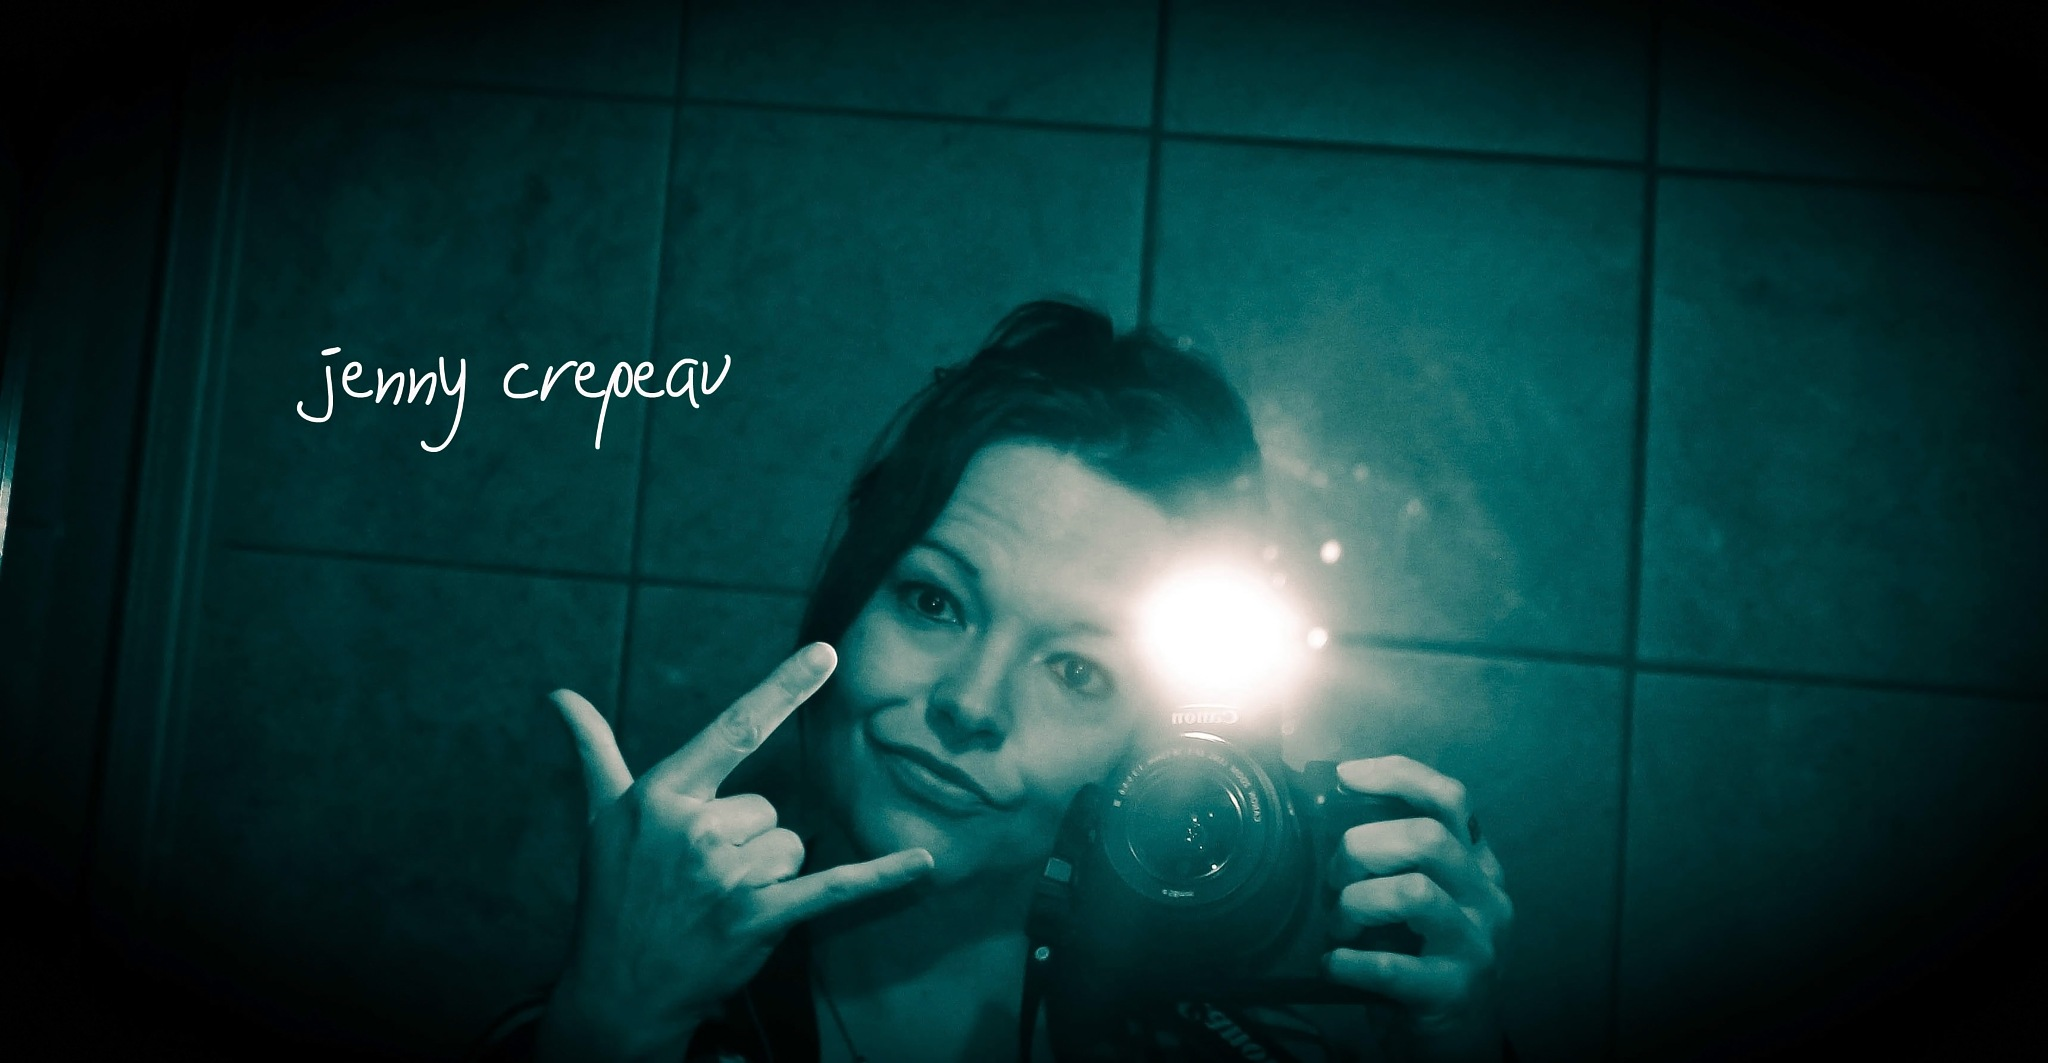 Untitled by crepeau jenny